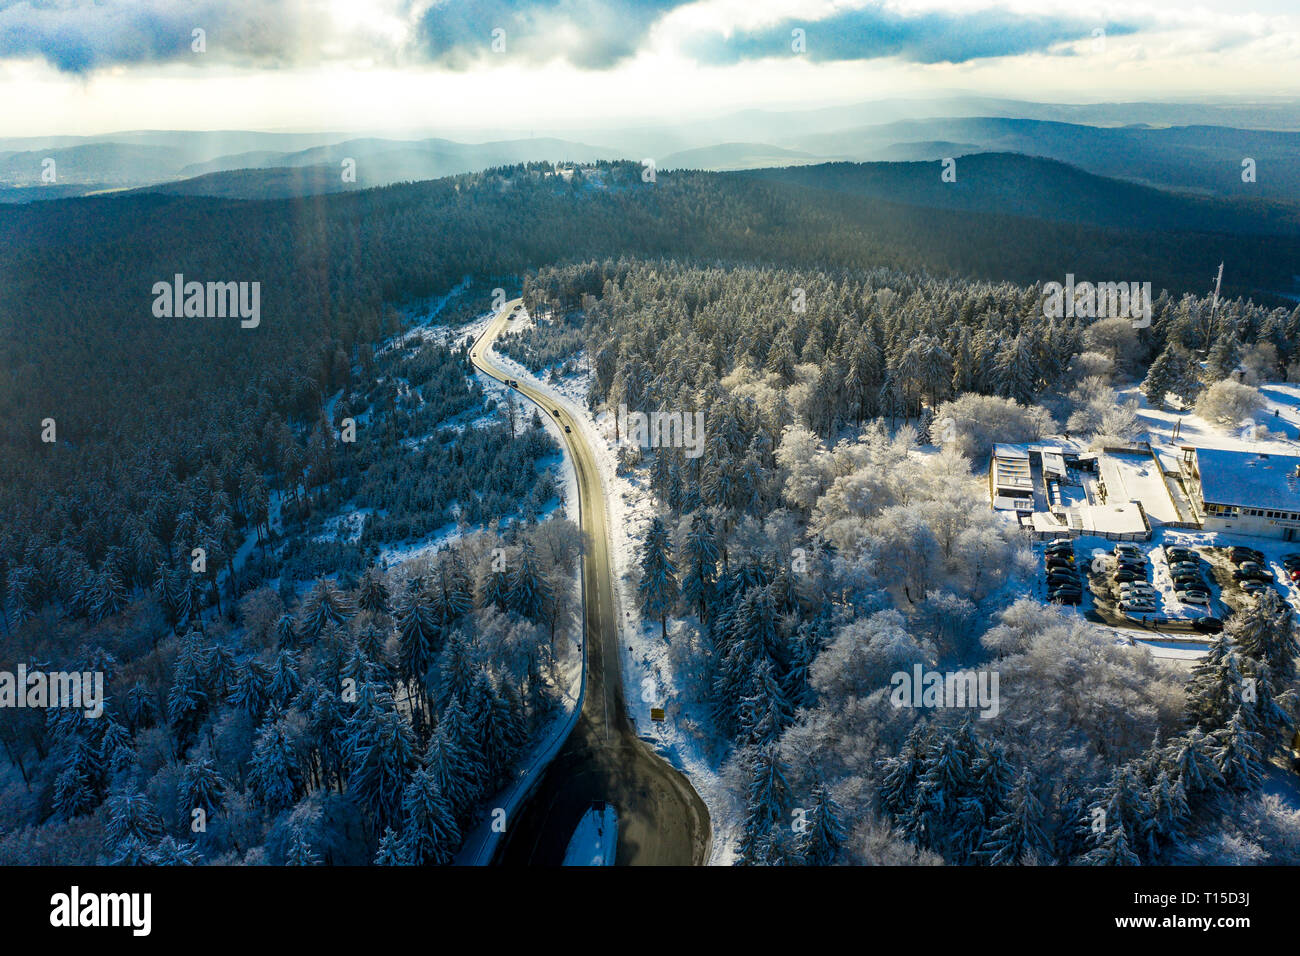 Germany, Hesse, Schmitten, Aerial view of Grosser Feldberg, road and forest in winter Stock Photo